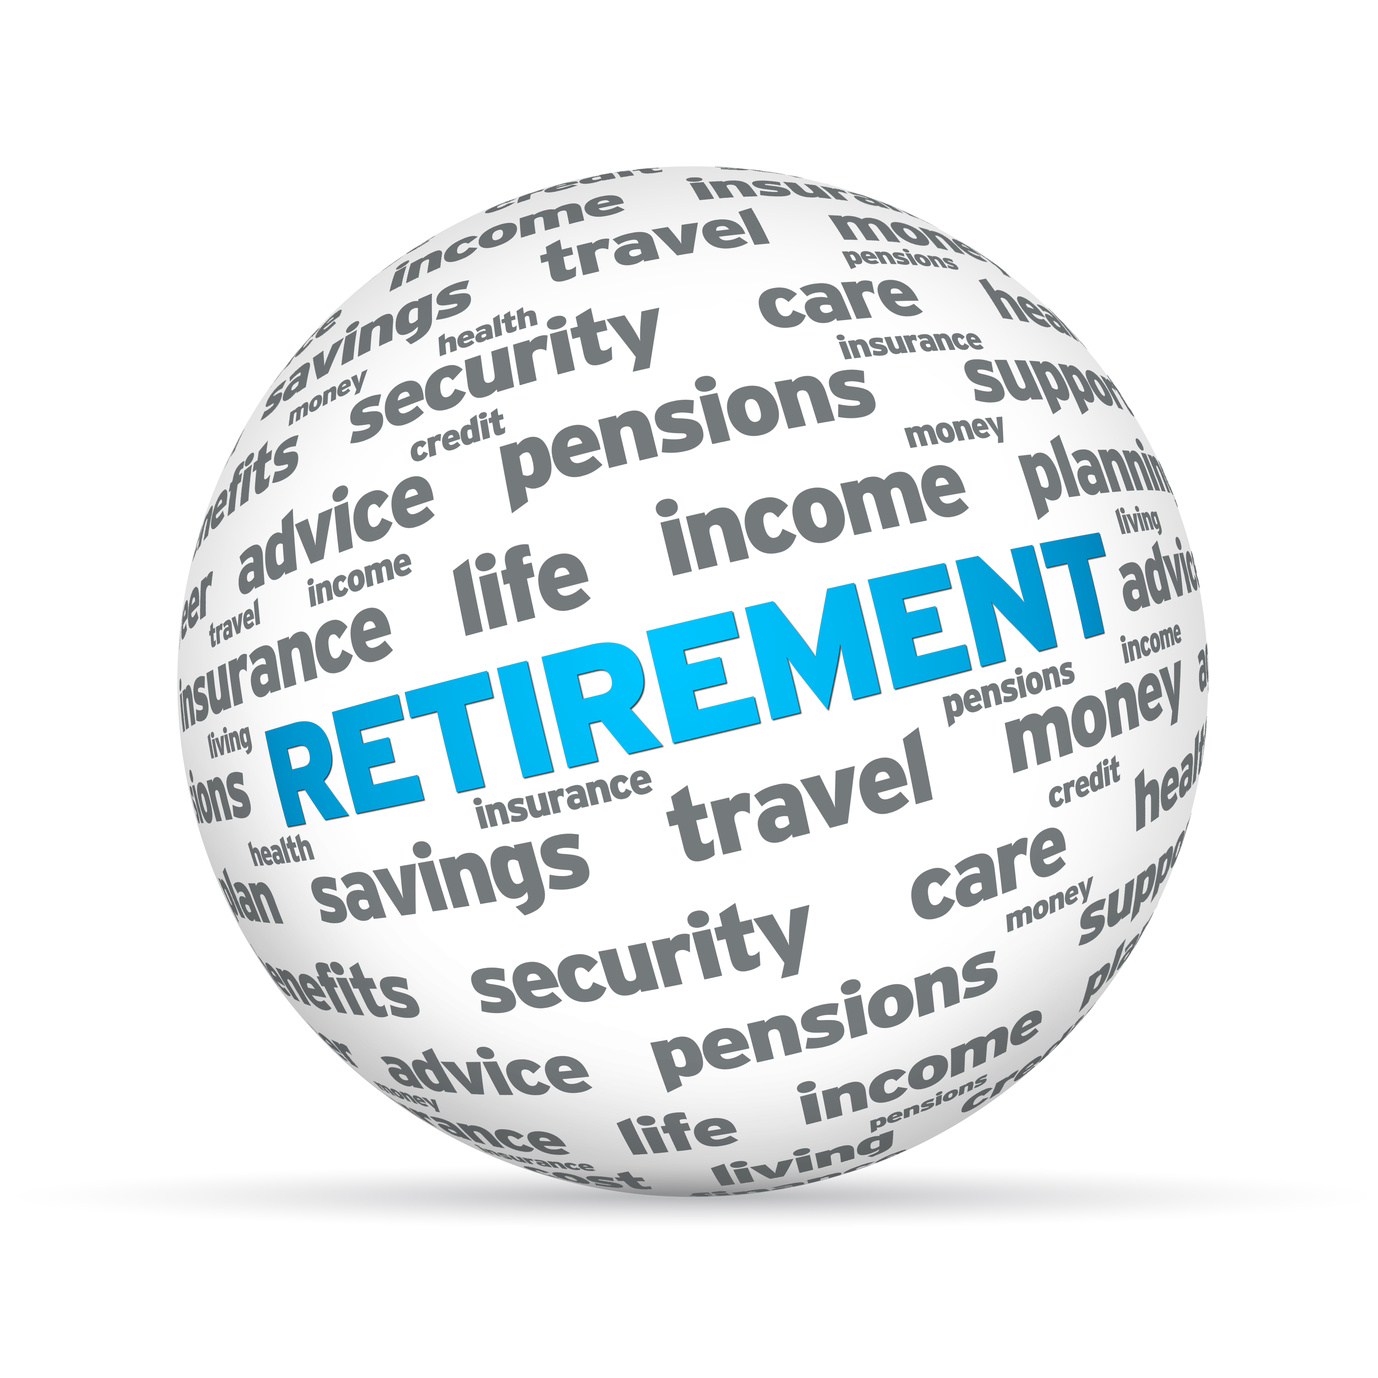 Get a Plan for Retirement